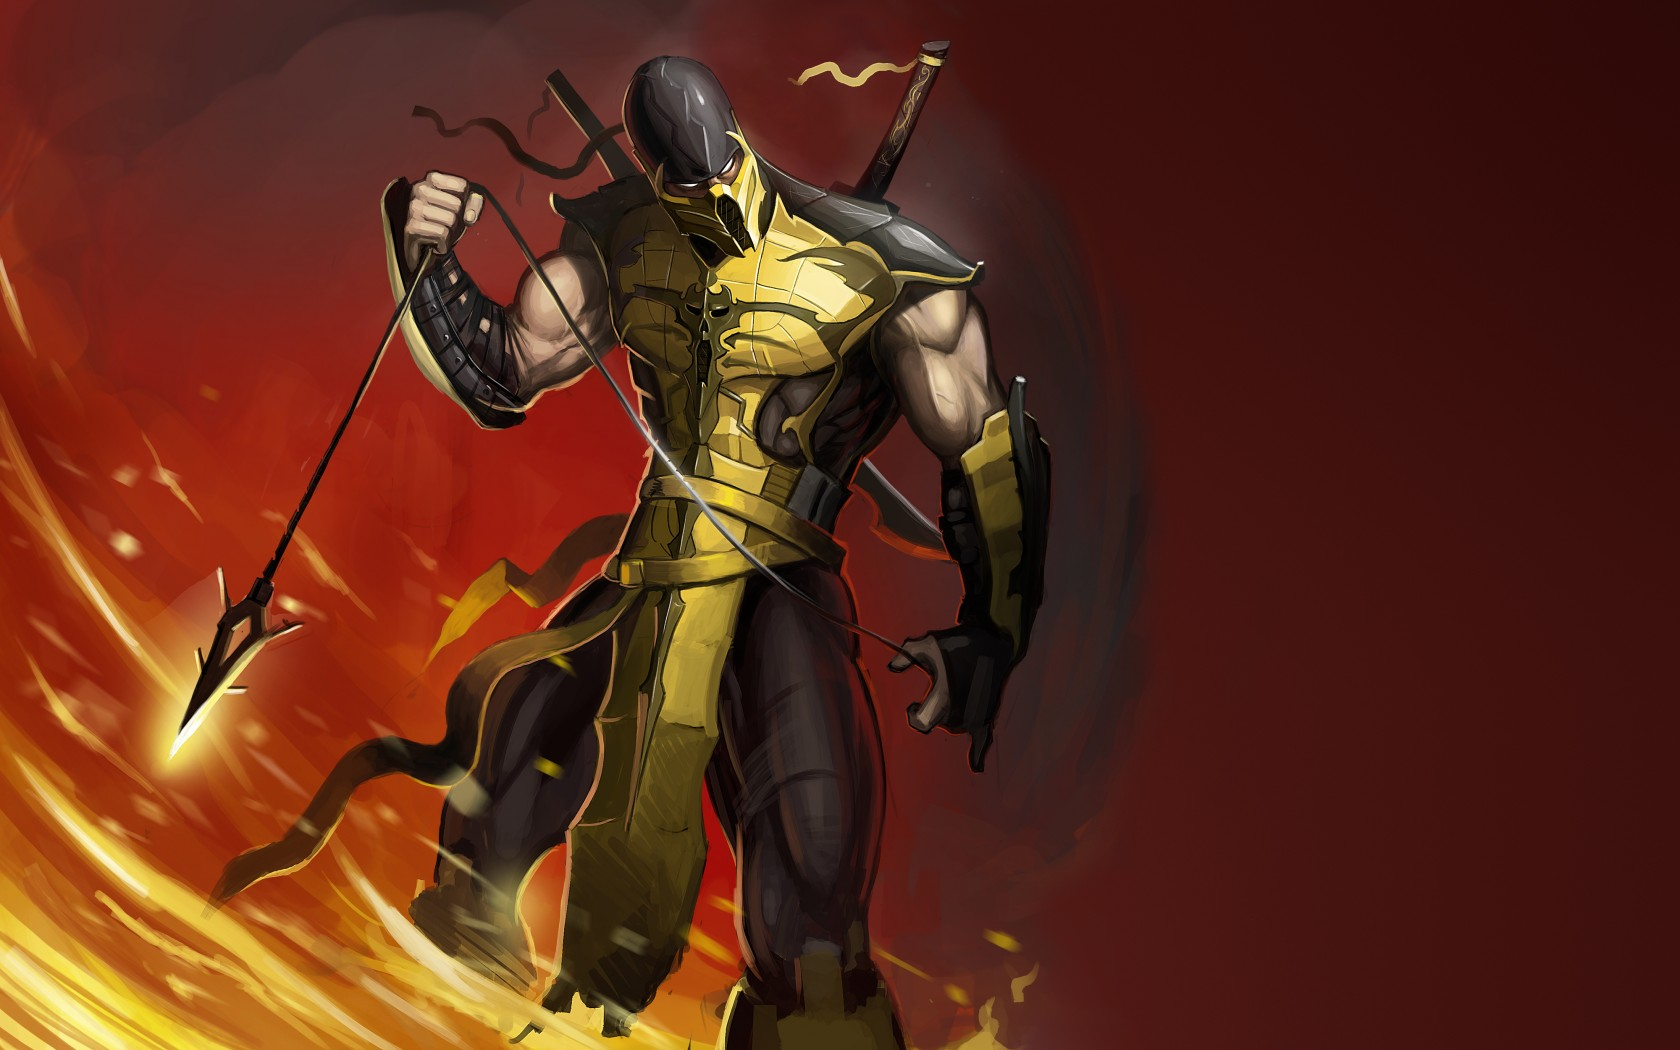 Mortal Kombat wallpaper Scorpion 16